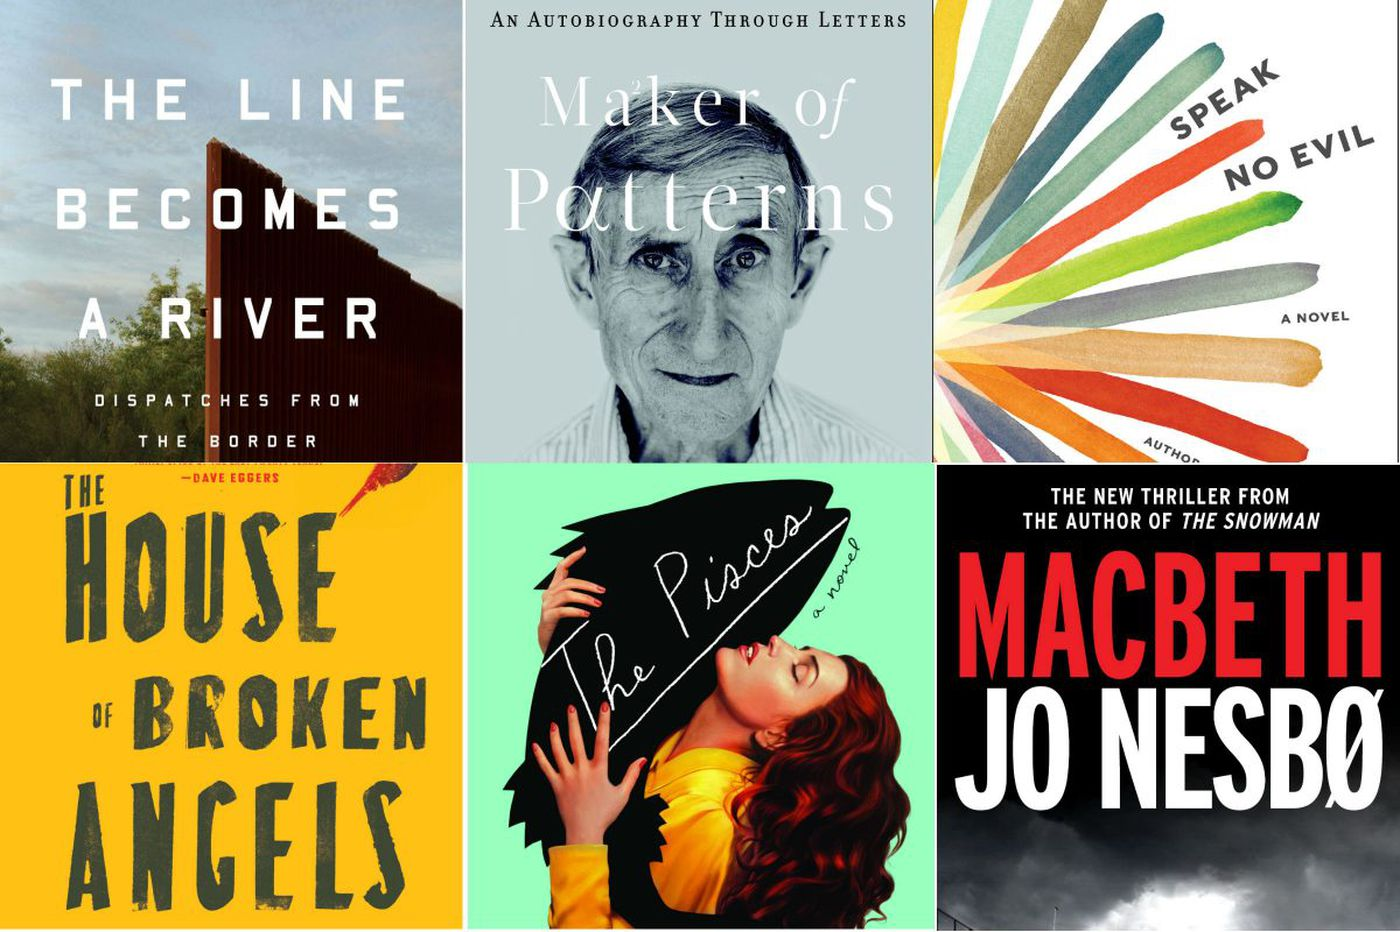 Bill Clinton, Roxane Gay, Michael Ondaatje, and more authors with books debuting in Spring 2018